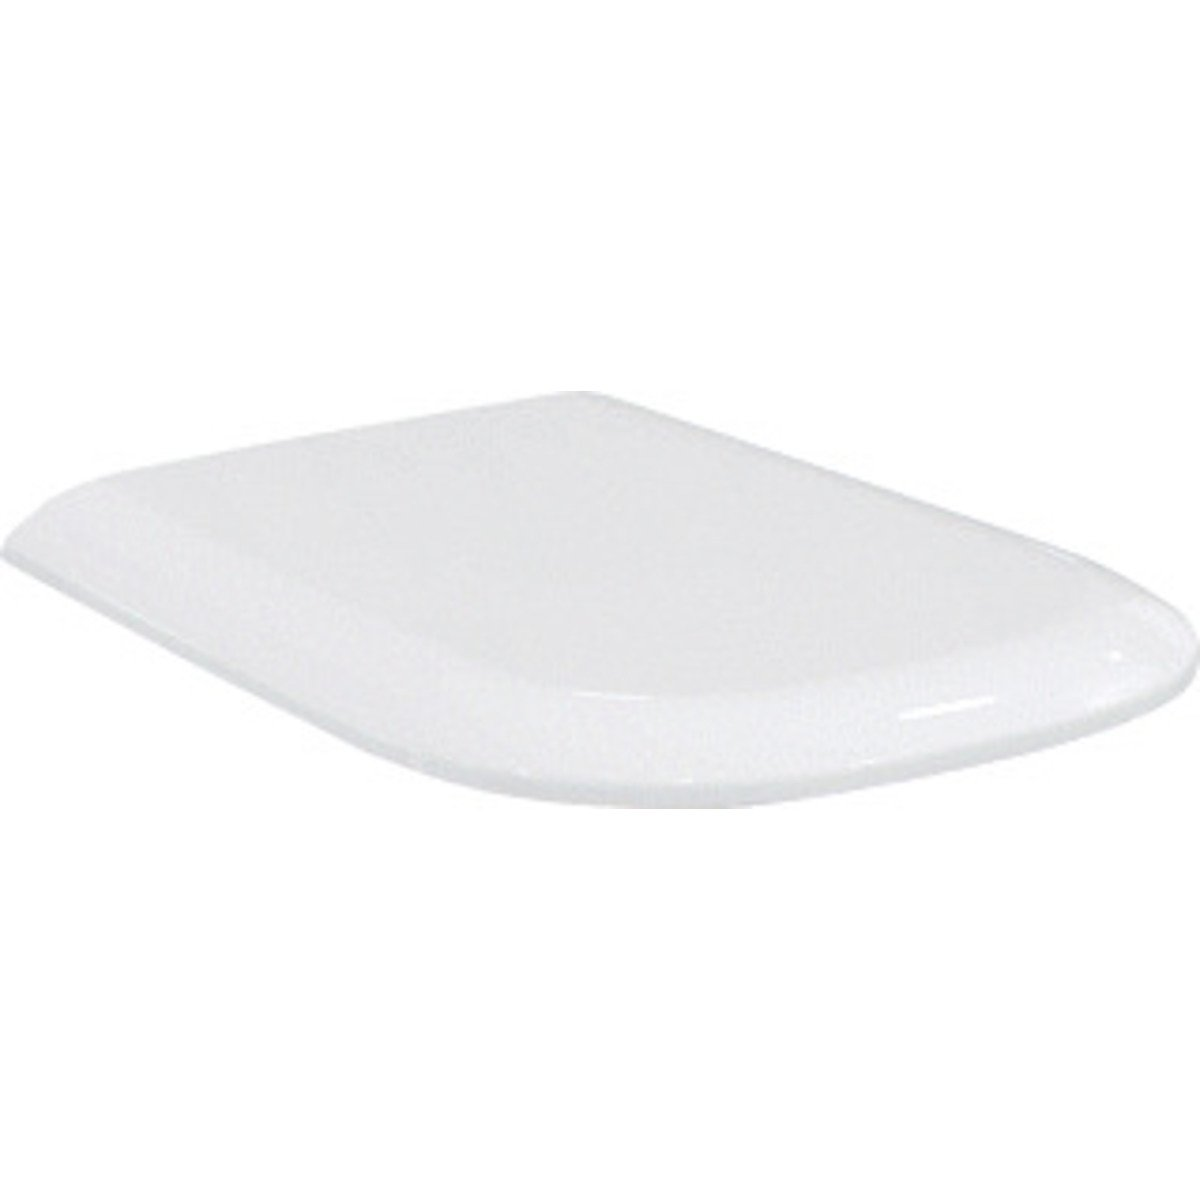 ideal standard softmood lunette wc t661501